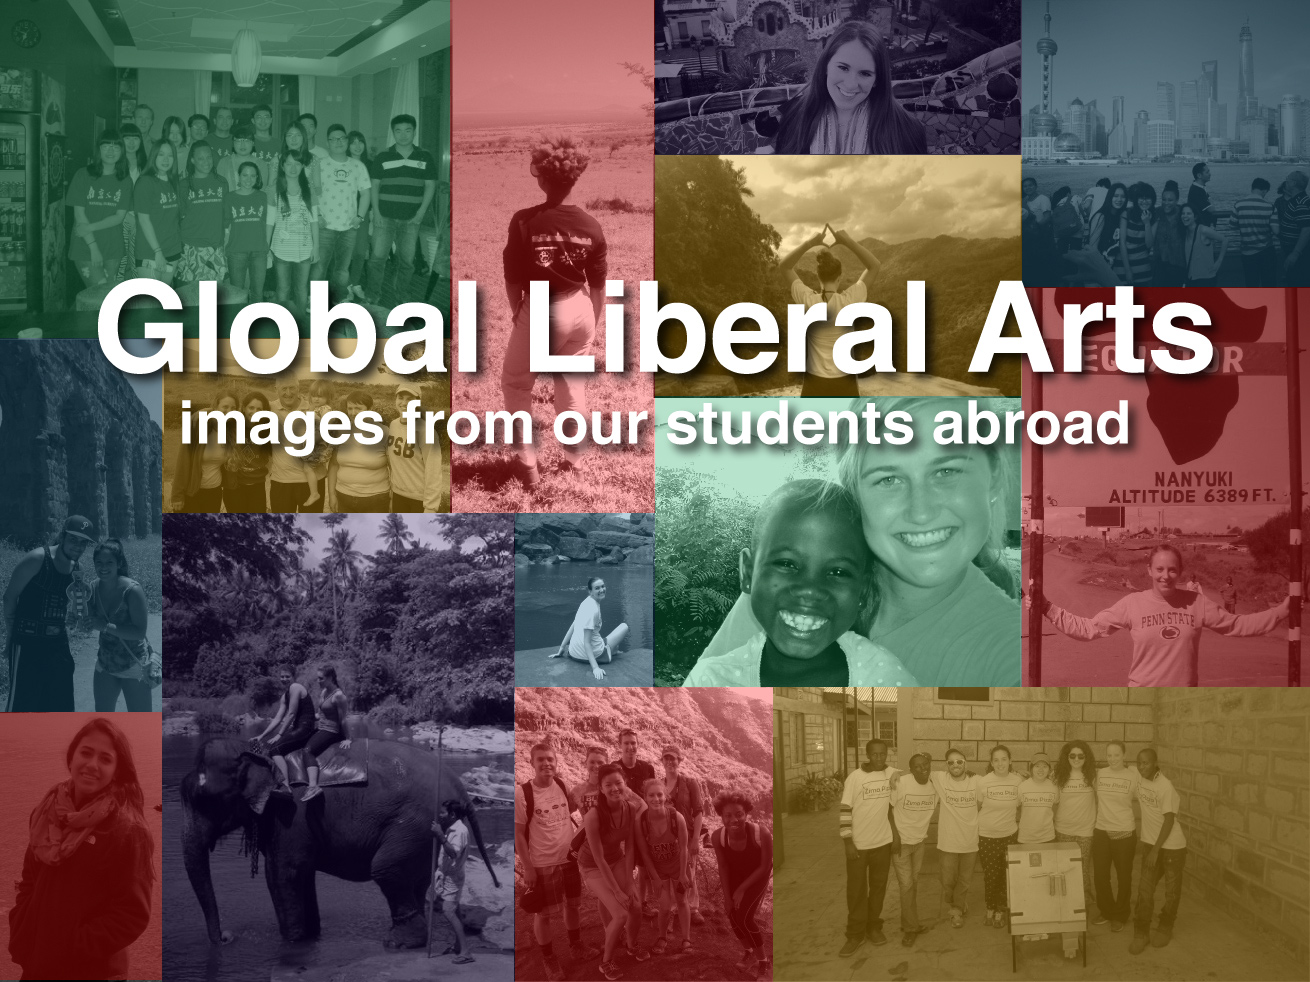 Global Liberal Arts: images from our students abroad